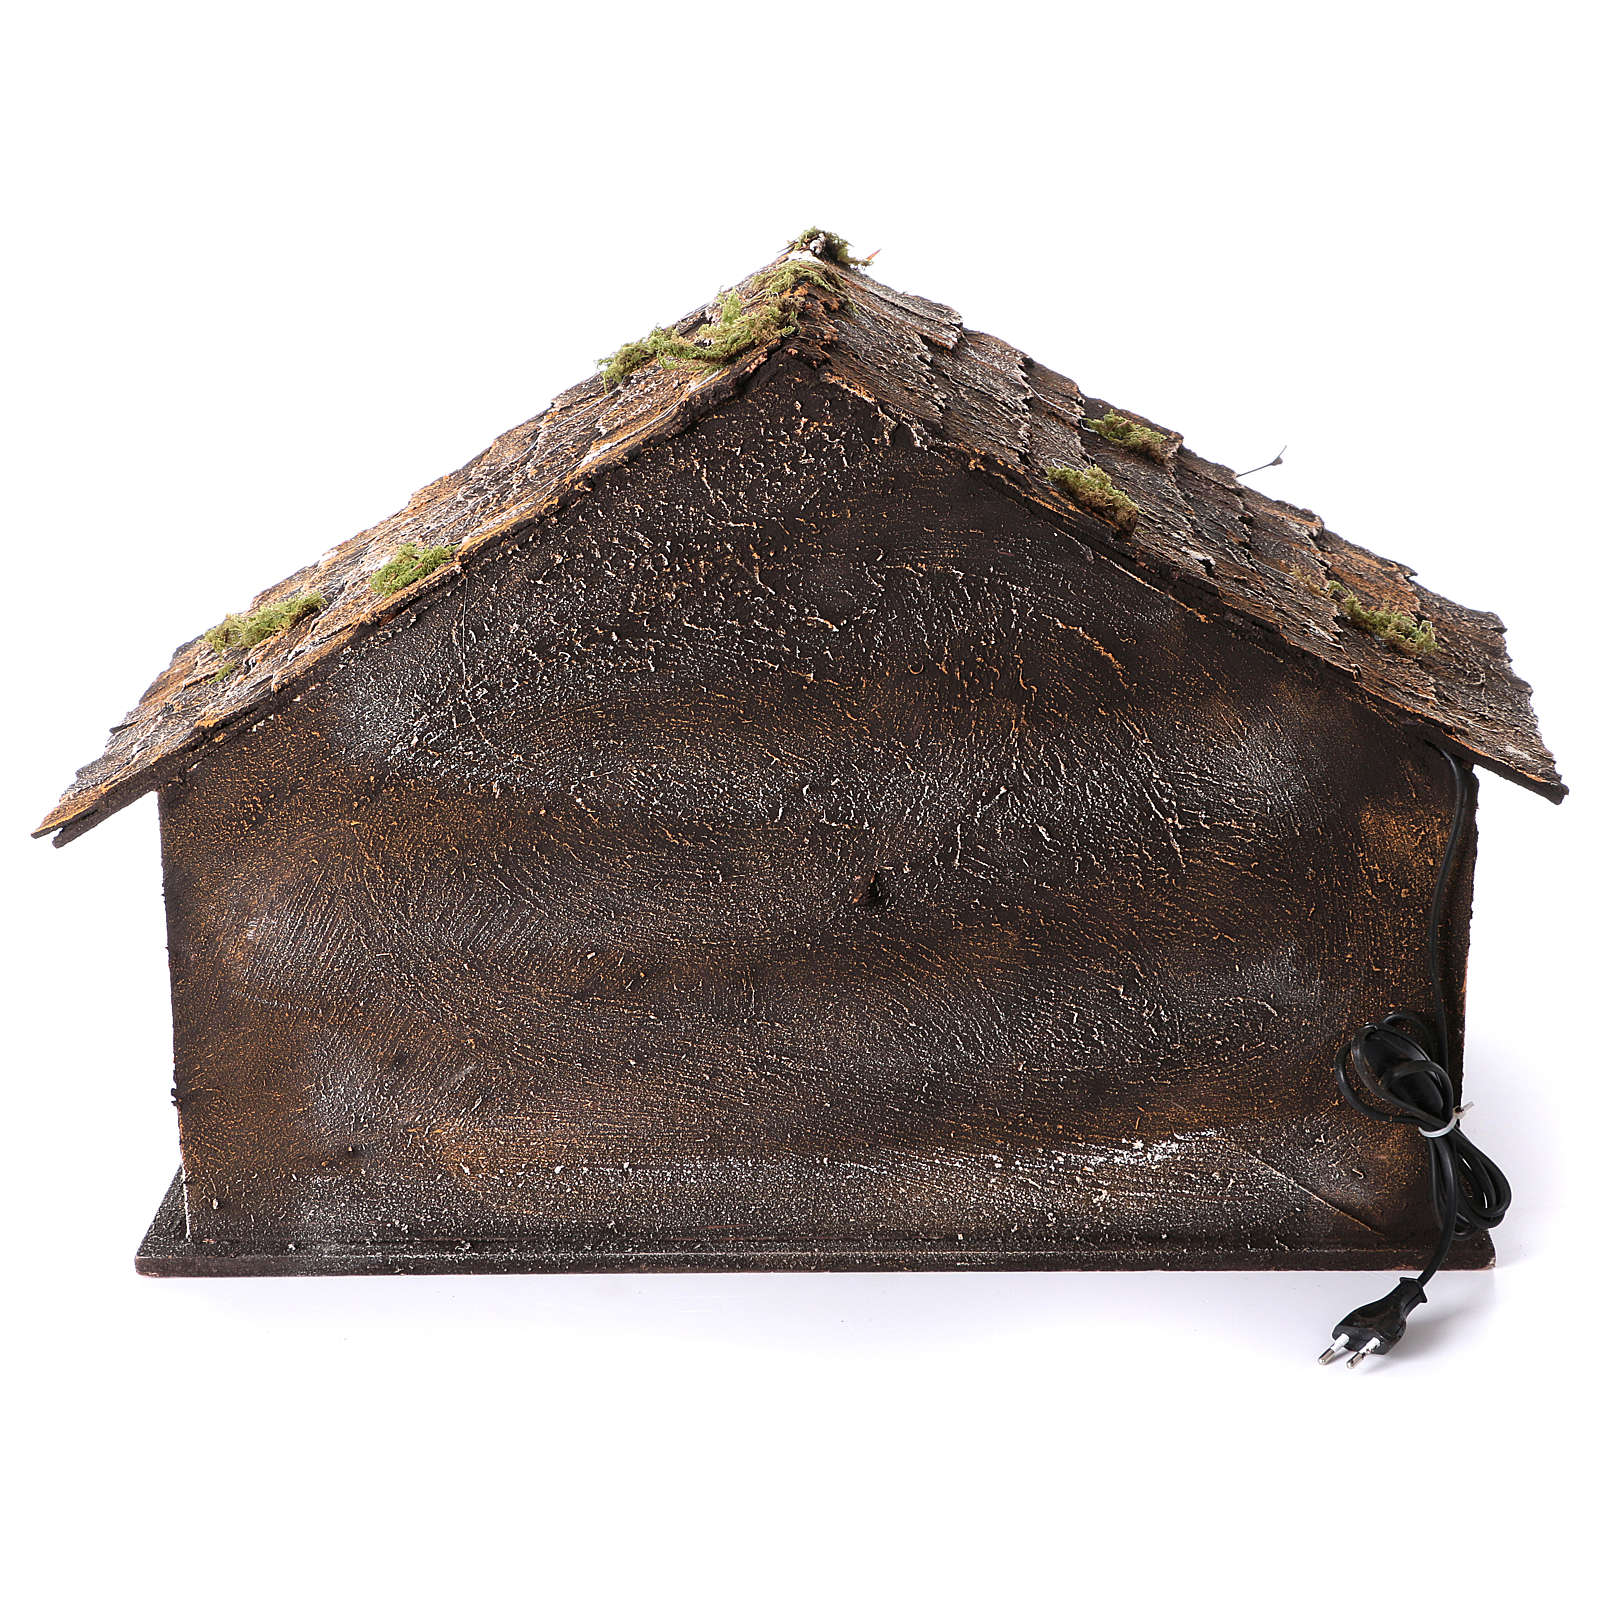 Hut with trough and light 45x60x50 cm for Neapolitan nativity scene 4